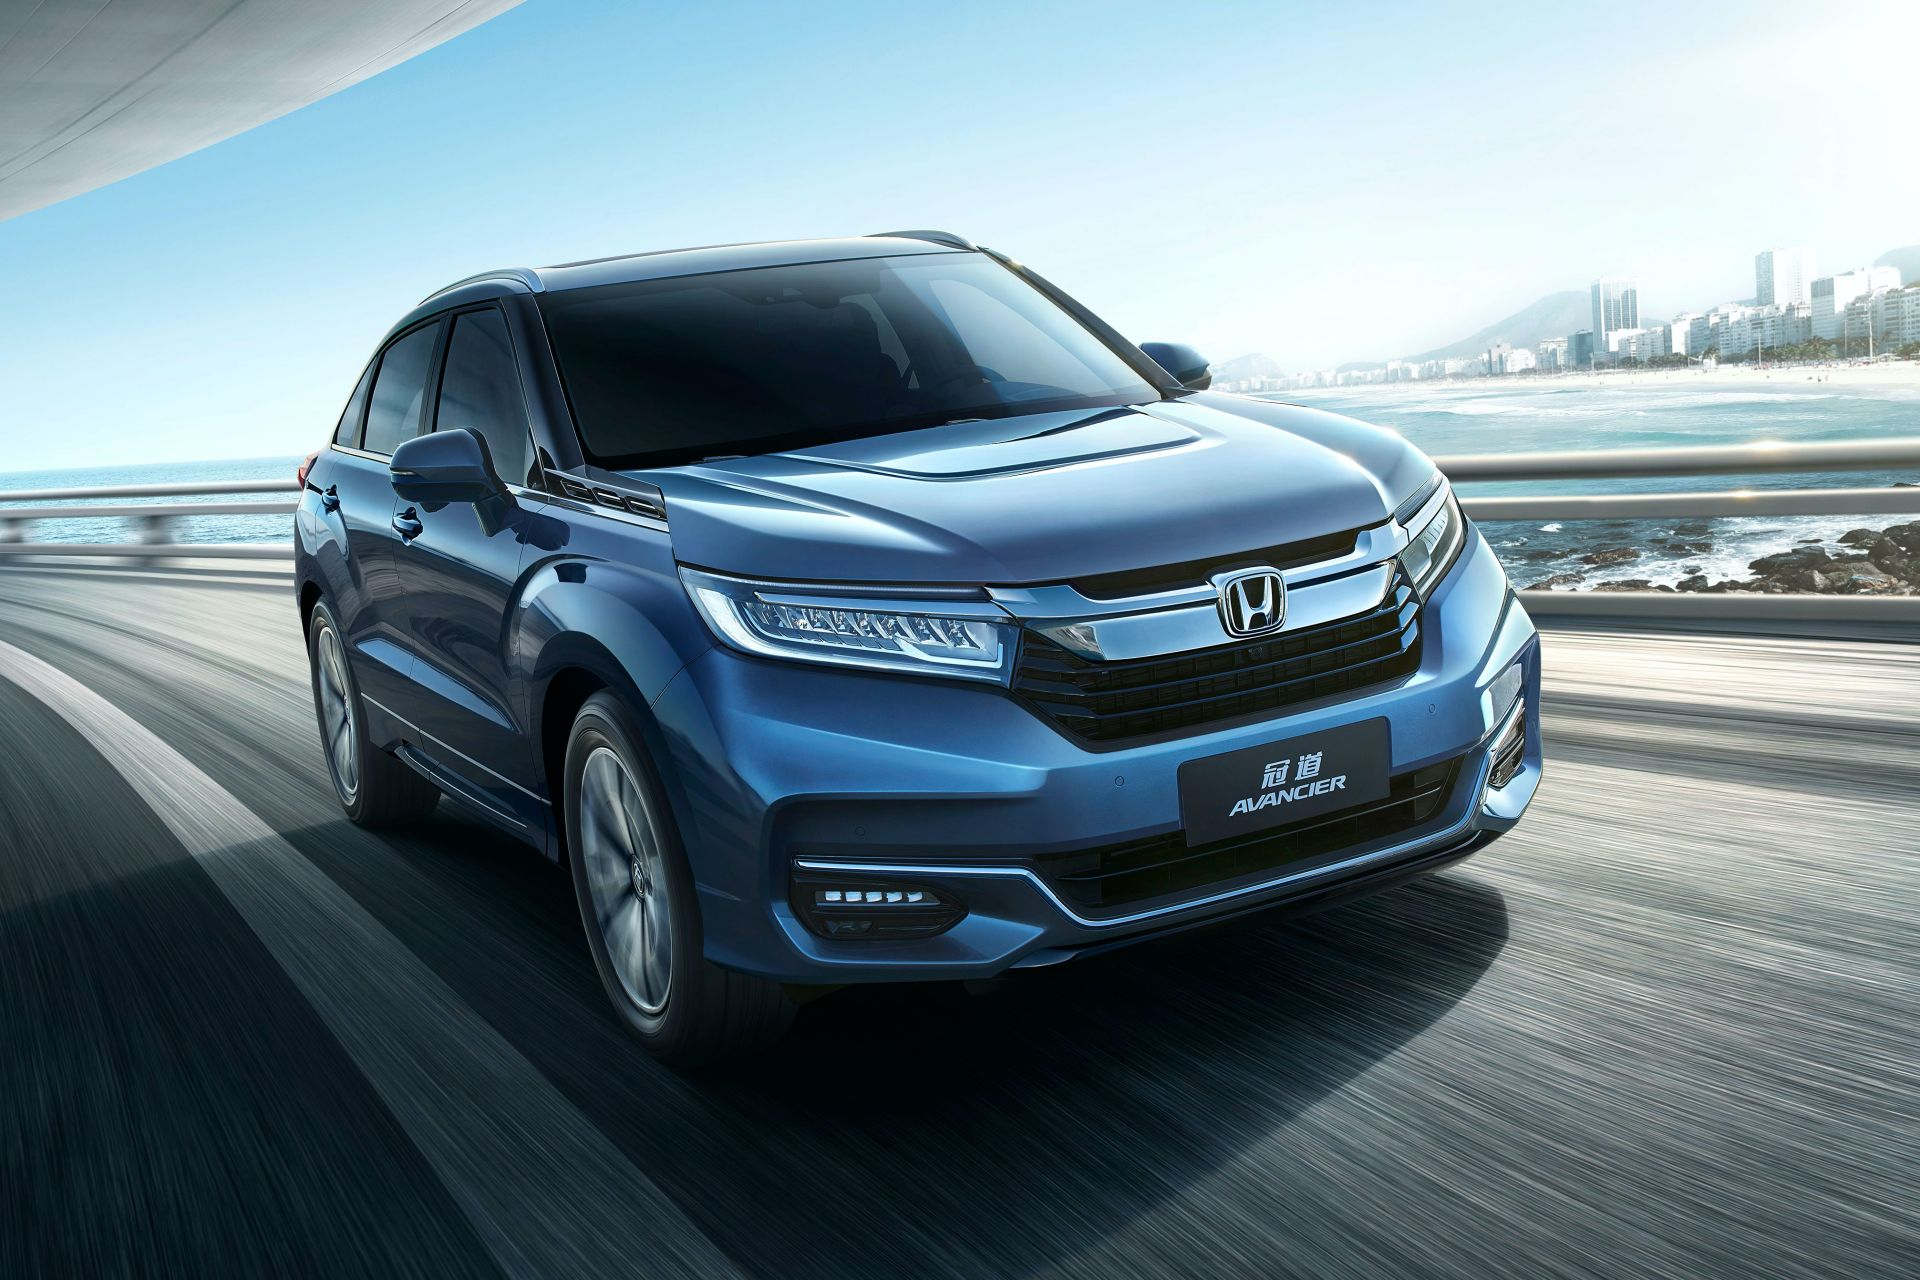 Honda-Avancier-facelift-2020-5